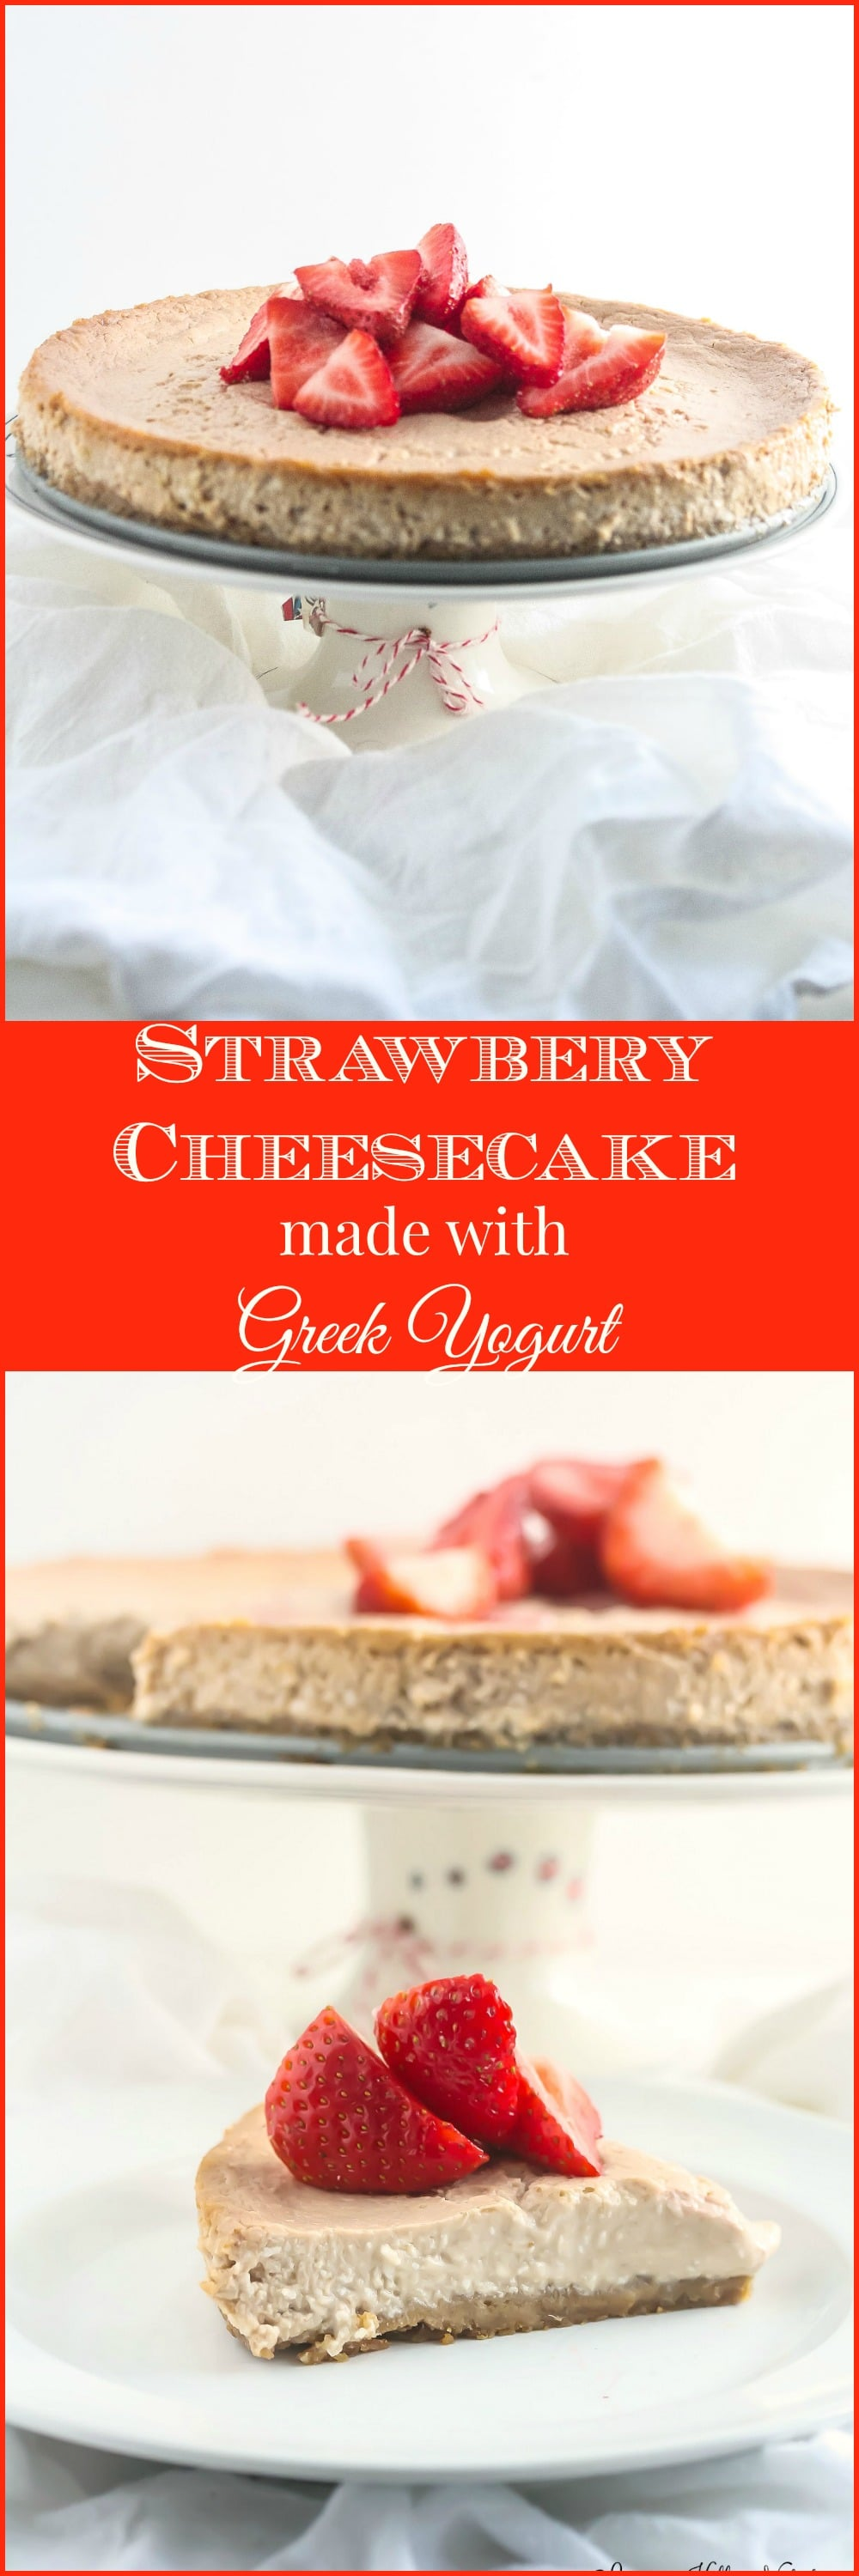 This Strawberry Cheesecake is lightened up, but is still delicious and simple to prepare. From Lauren Kelly Nutrition